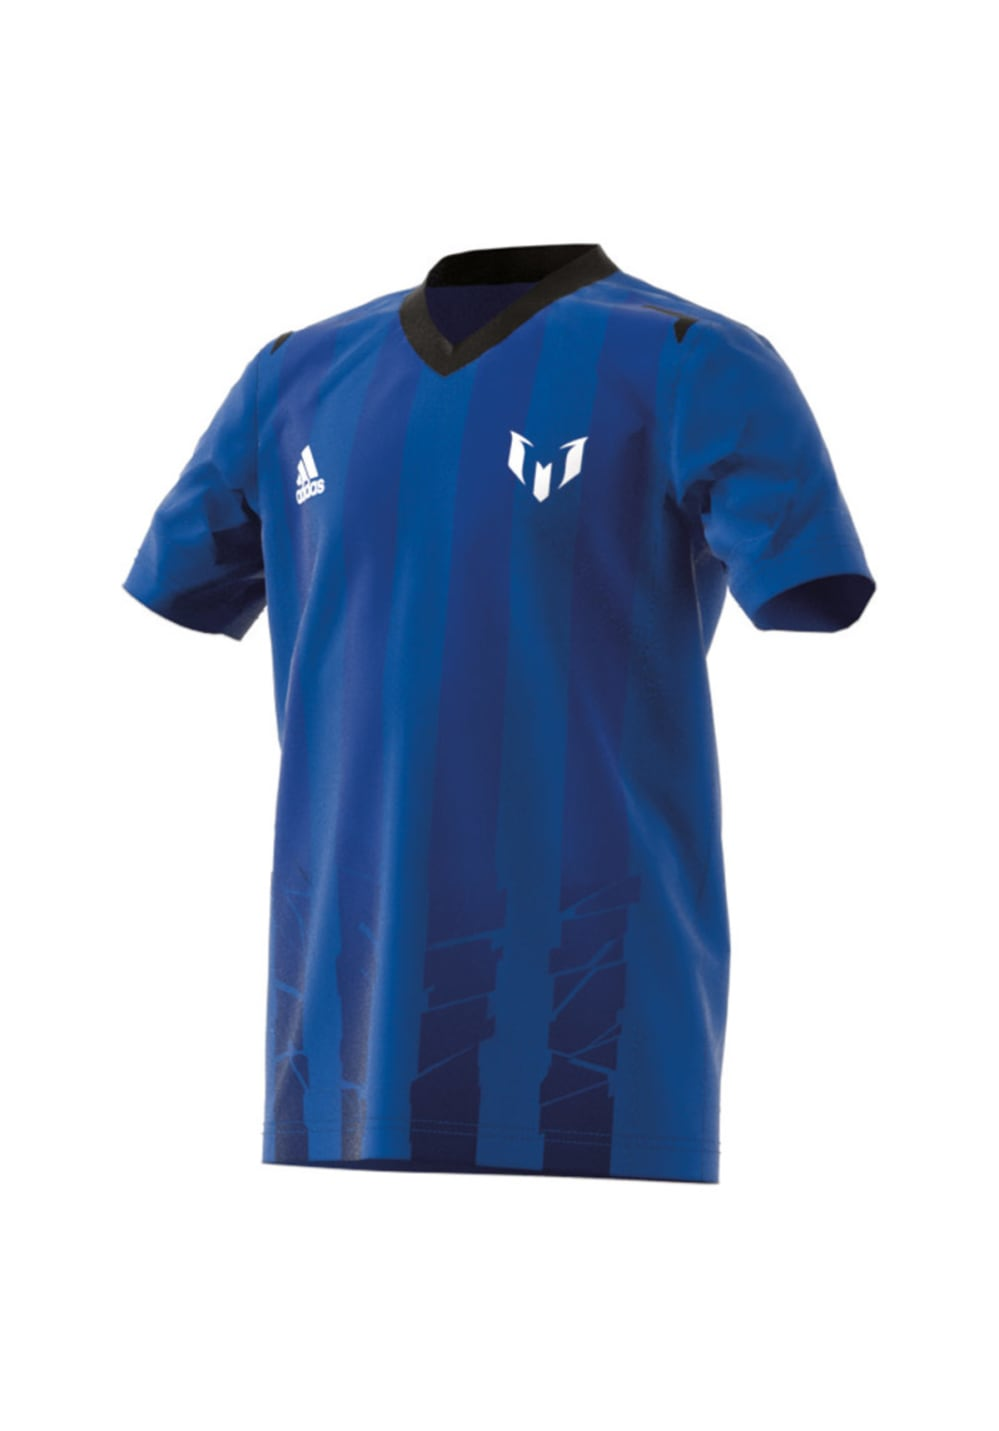 adf5578d2 adidas Messi Icon T-Shirt - Running tops - Blue